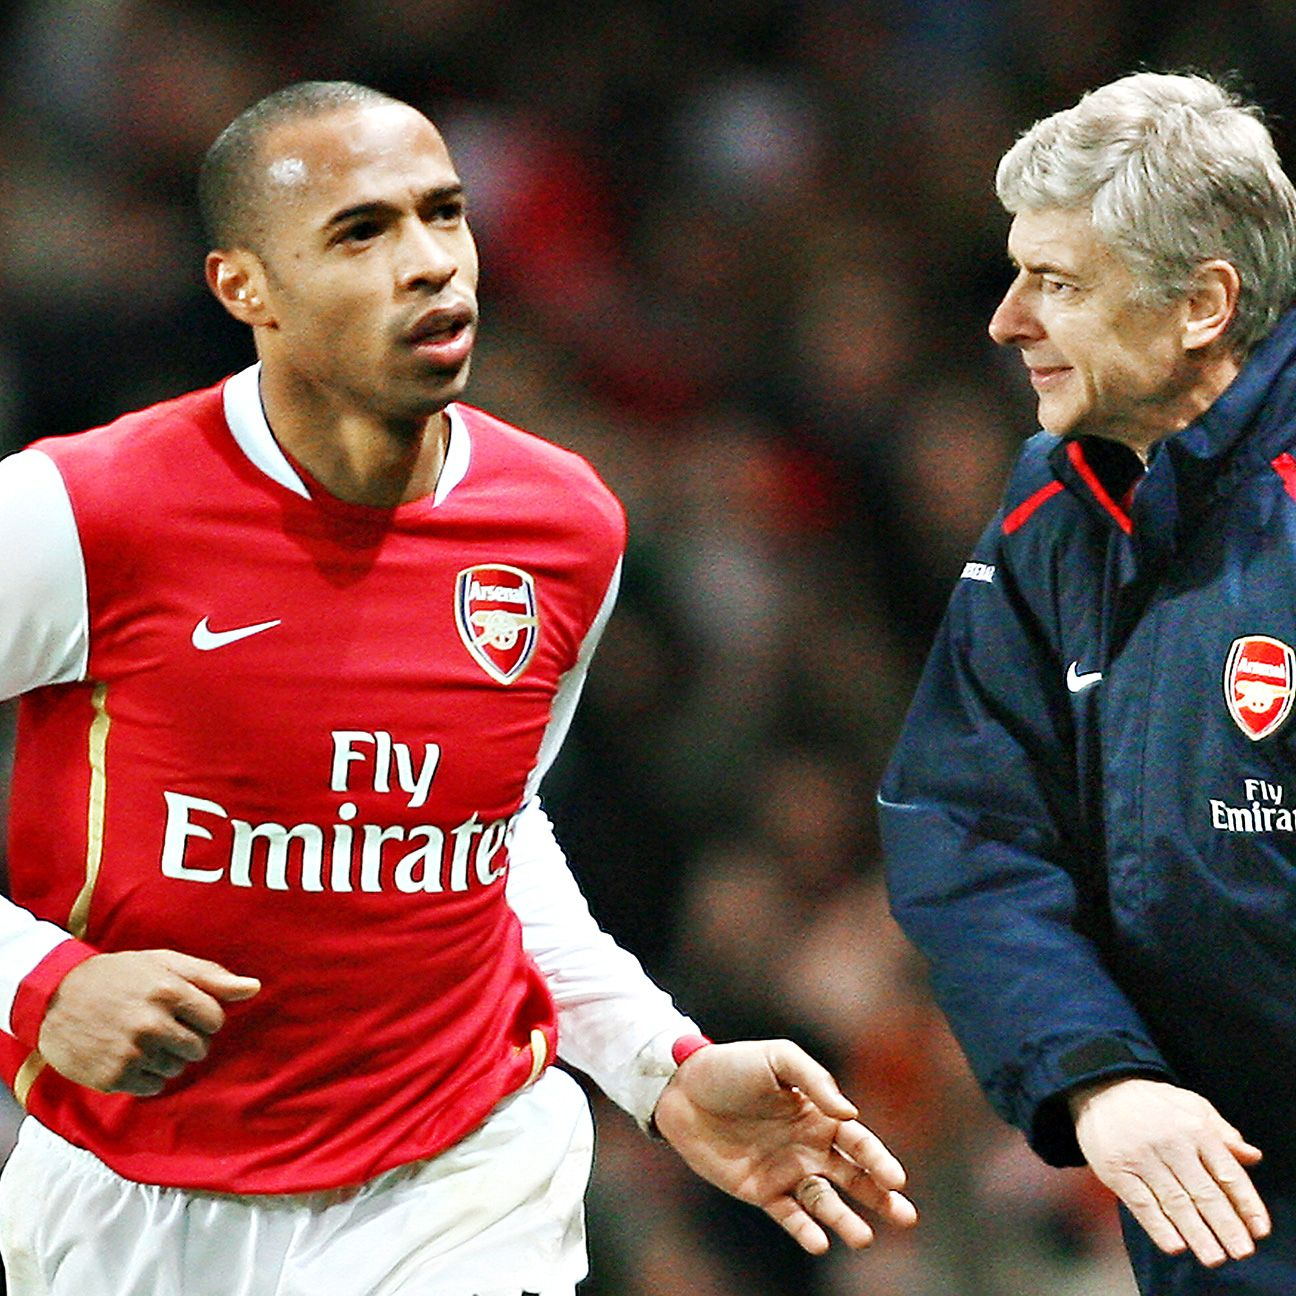 Wenger's recruitment of Thierry Henry to Arsenal brought a long spell of success to the Gunners.